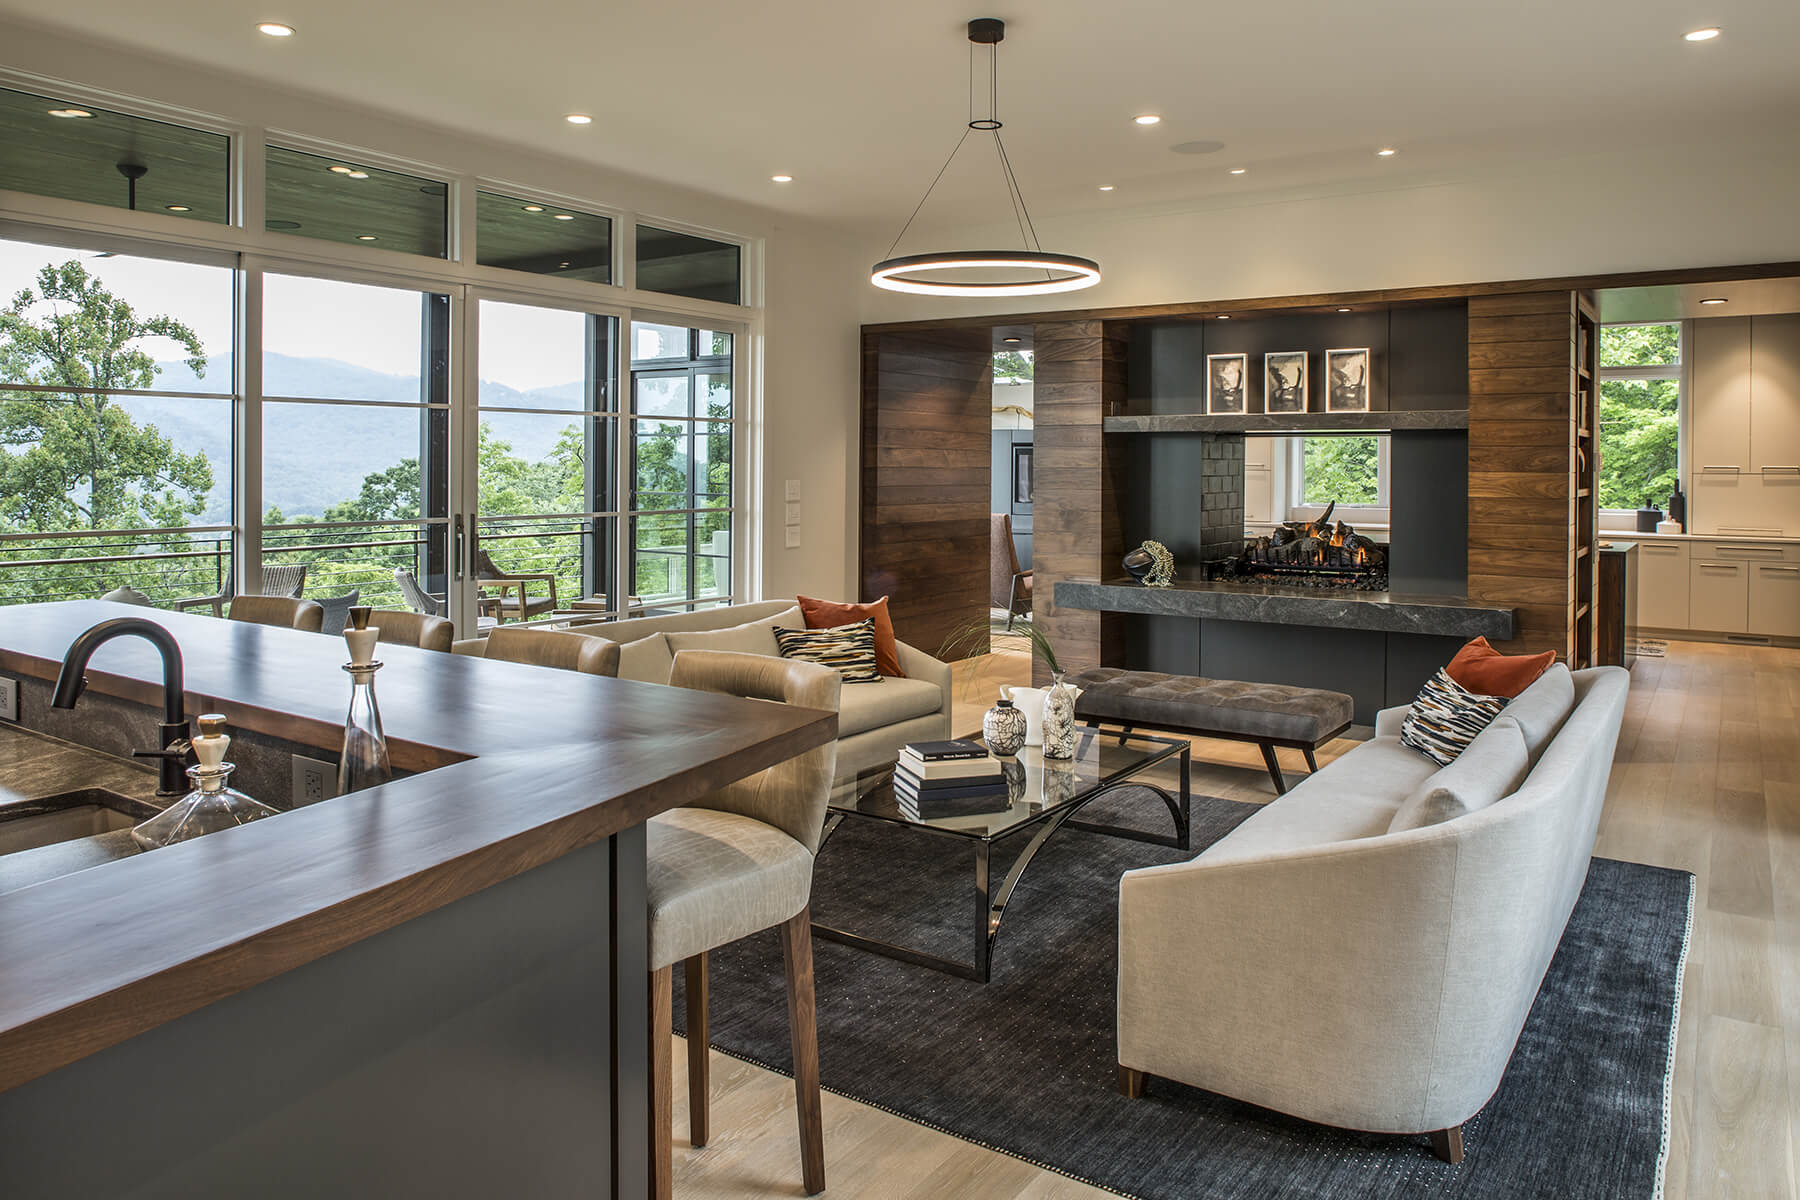 The Walnut Cove Hideaway home architectural design at The Cliffs